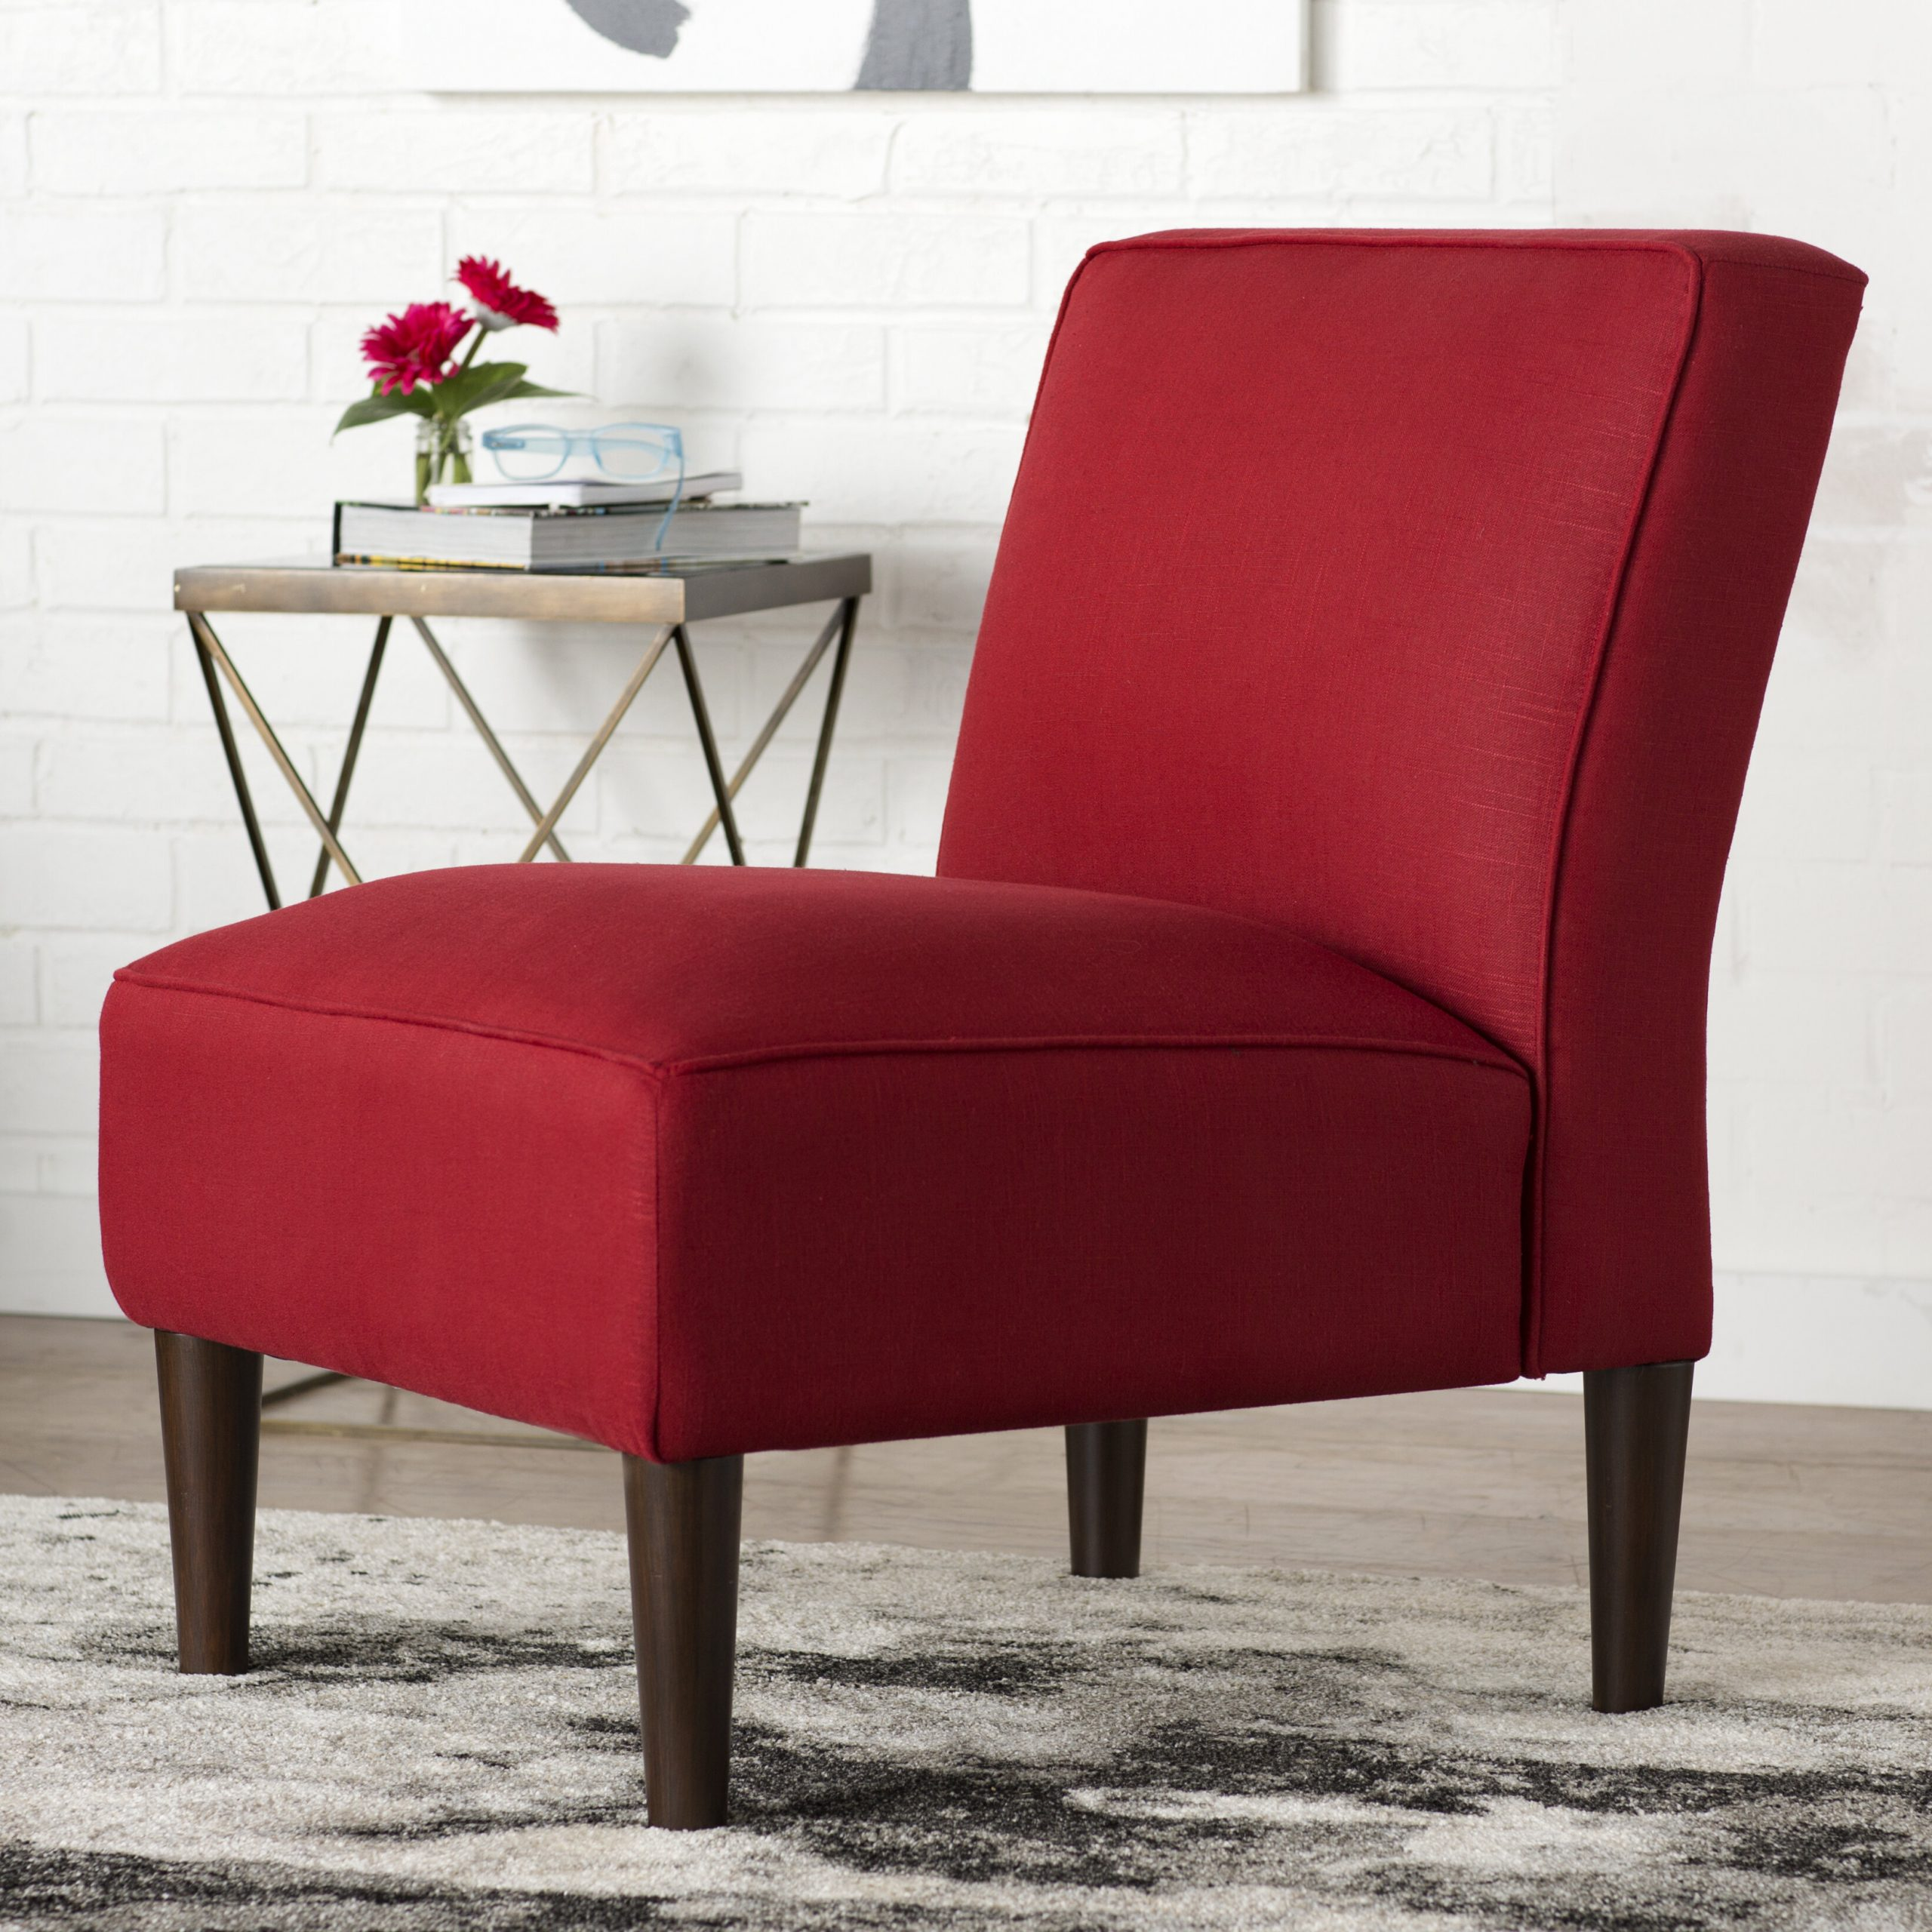 Red Slipper Accent Chairs You'Ll Love In 2021 | Wayfair Regarding Easterling Velvet Slipper Chairs (View 2 of 15)